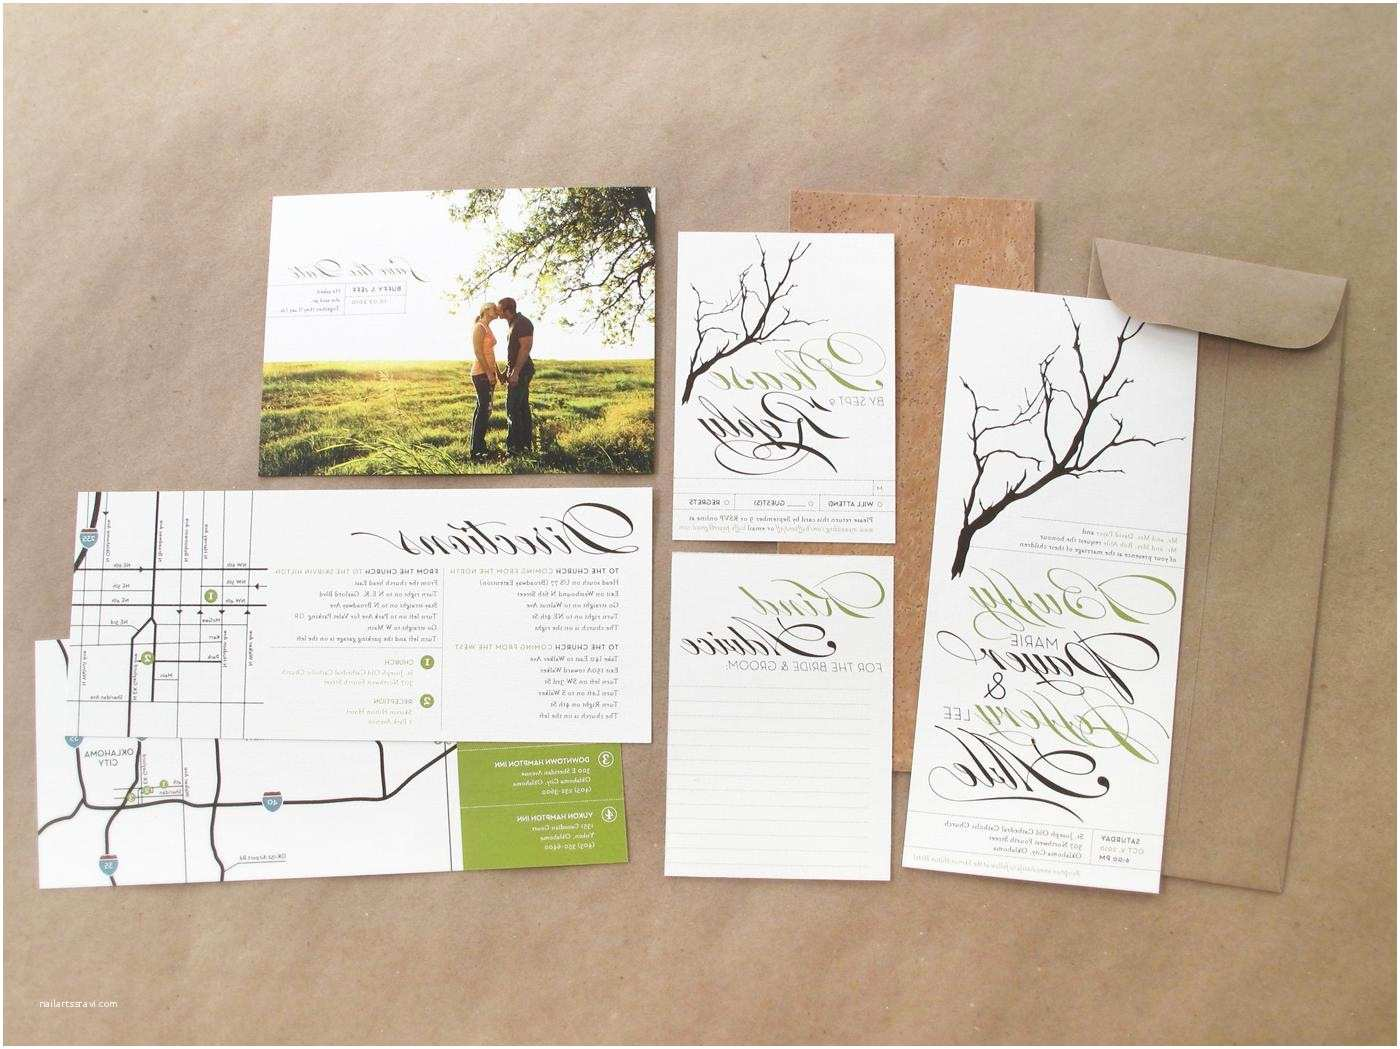 image relating to Printable Invitations Kits identified as Print Your Personal Marriage Invites Kits Fearsome Printable